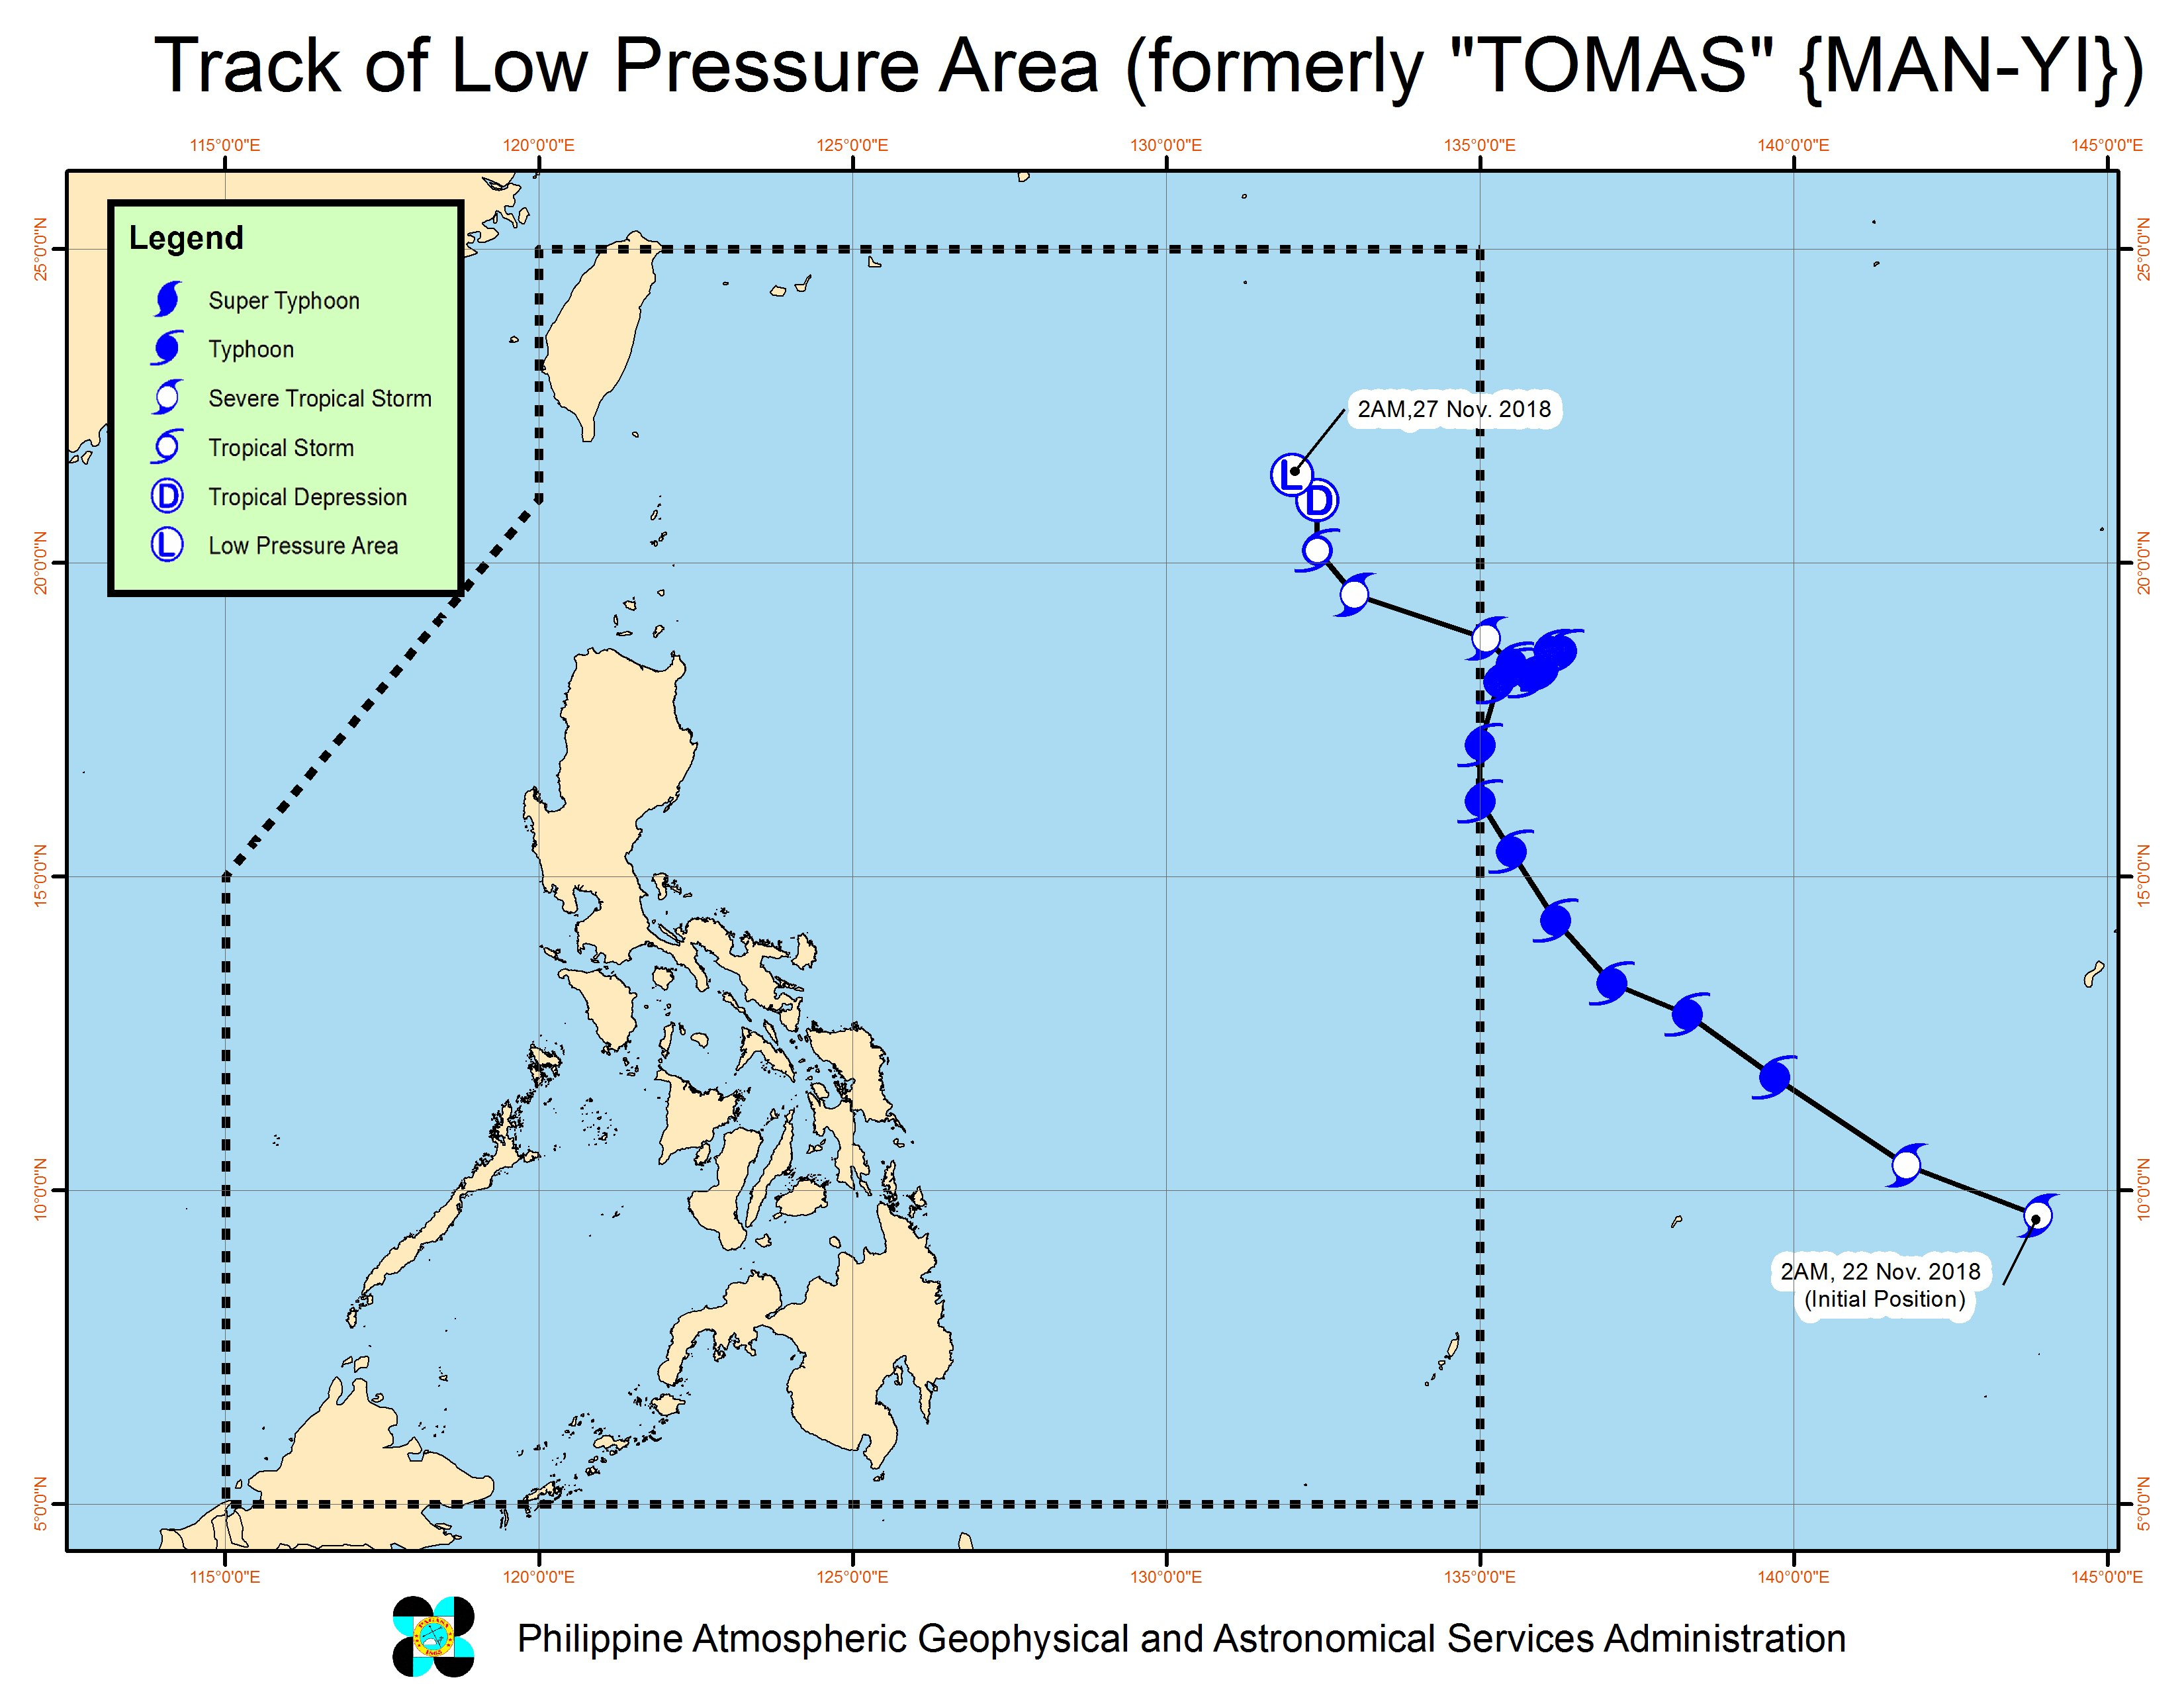 Forecast track of the low pressure area which used to be Tomas (Man-yi), as of November 27, 2018, 5 am. Image from PAGASA